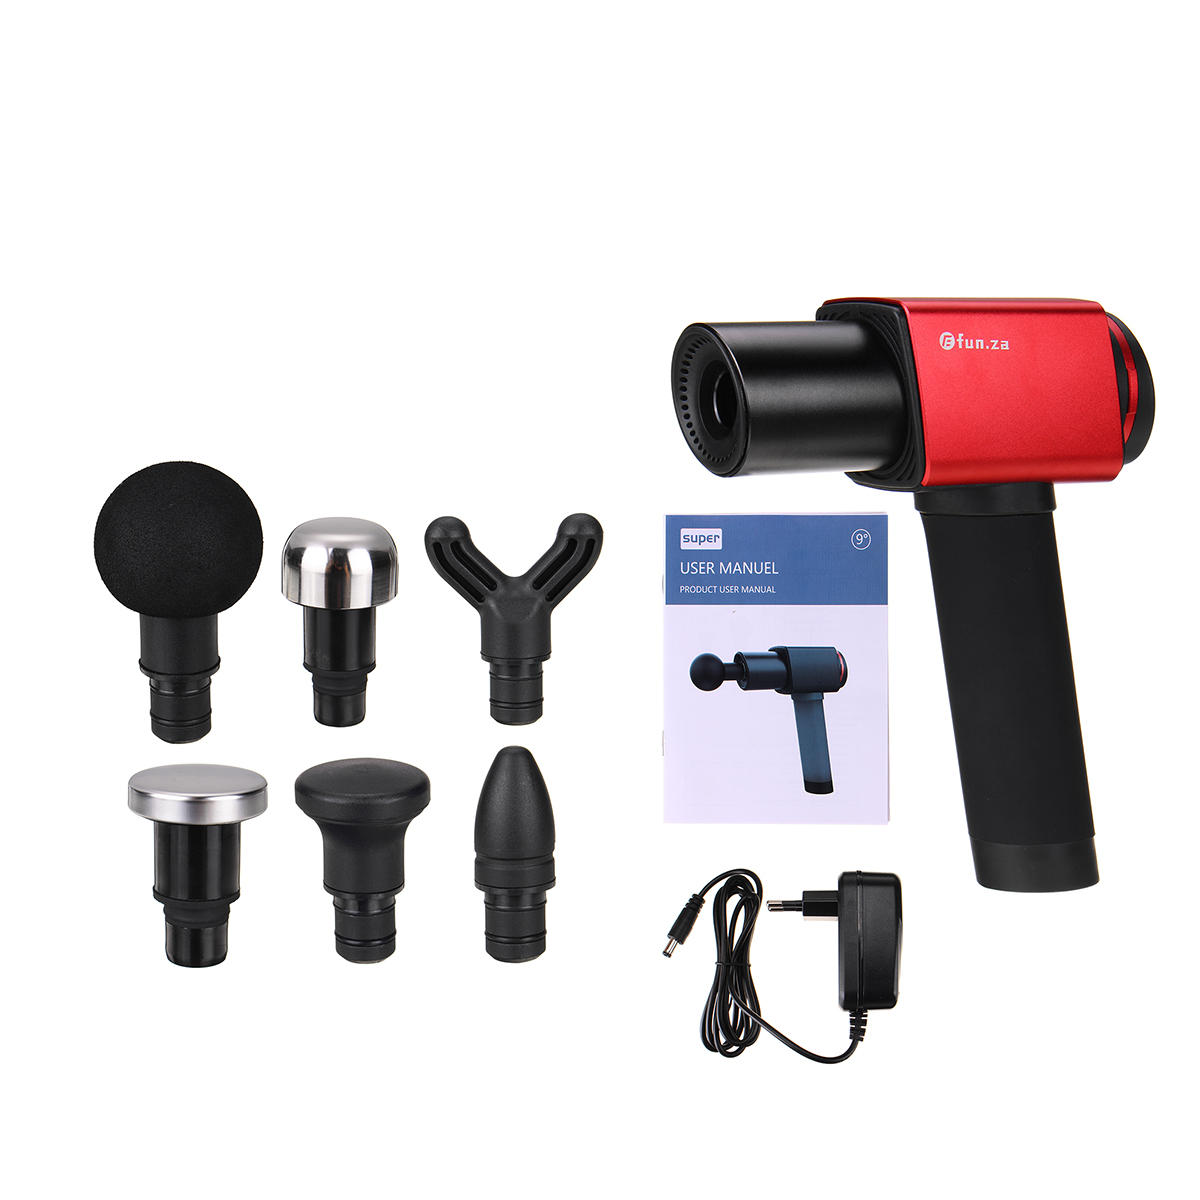 30db 3400mah Percussion Massager 6 Speed Electric Massager Therapy Vibration G un 1200-3200r/min Deep Tissue Muscle Massage 7H Long Battery Life